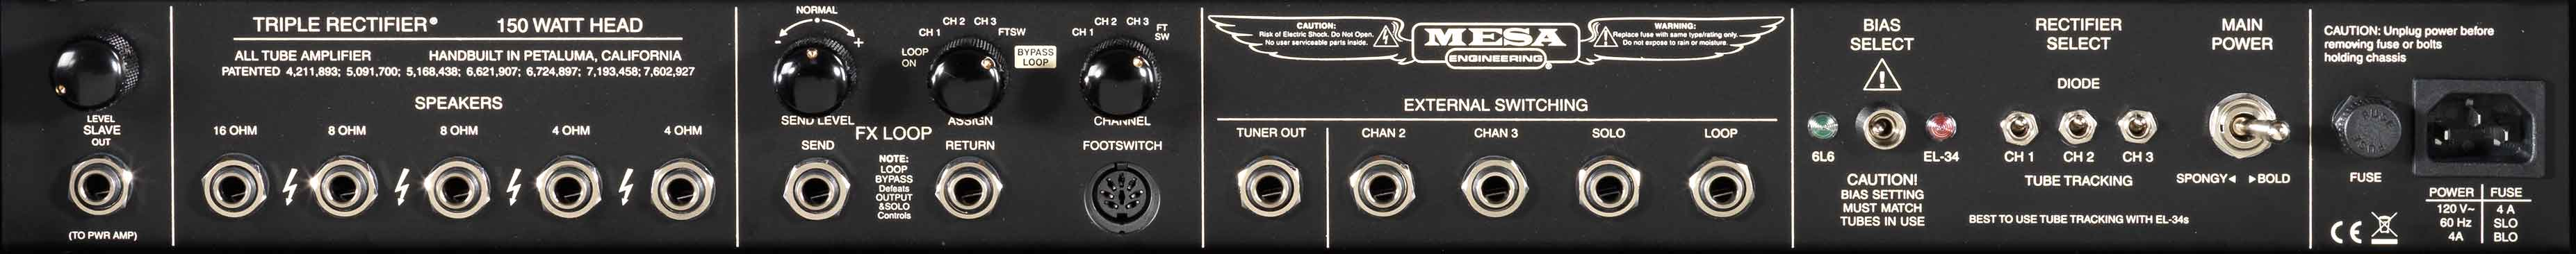 Triple Rectifier Mesa Boogie Wiring Diagram For Tube A New Level Of Power Dominance